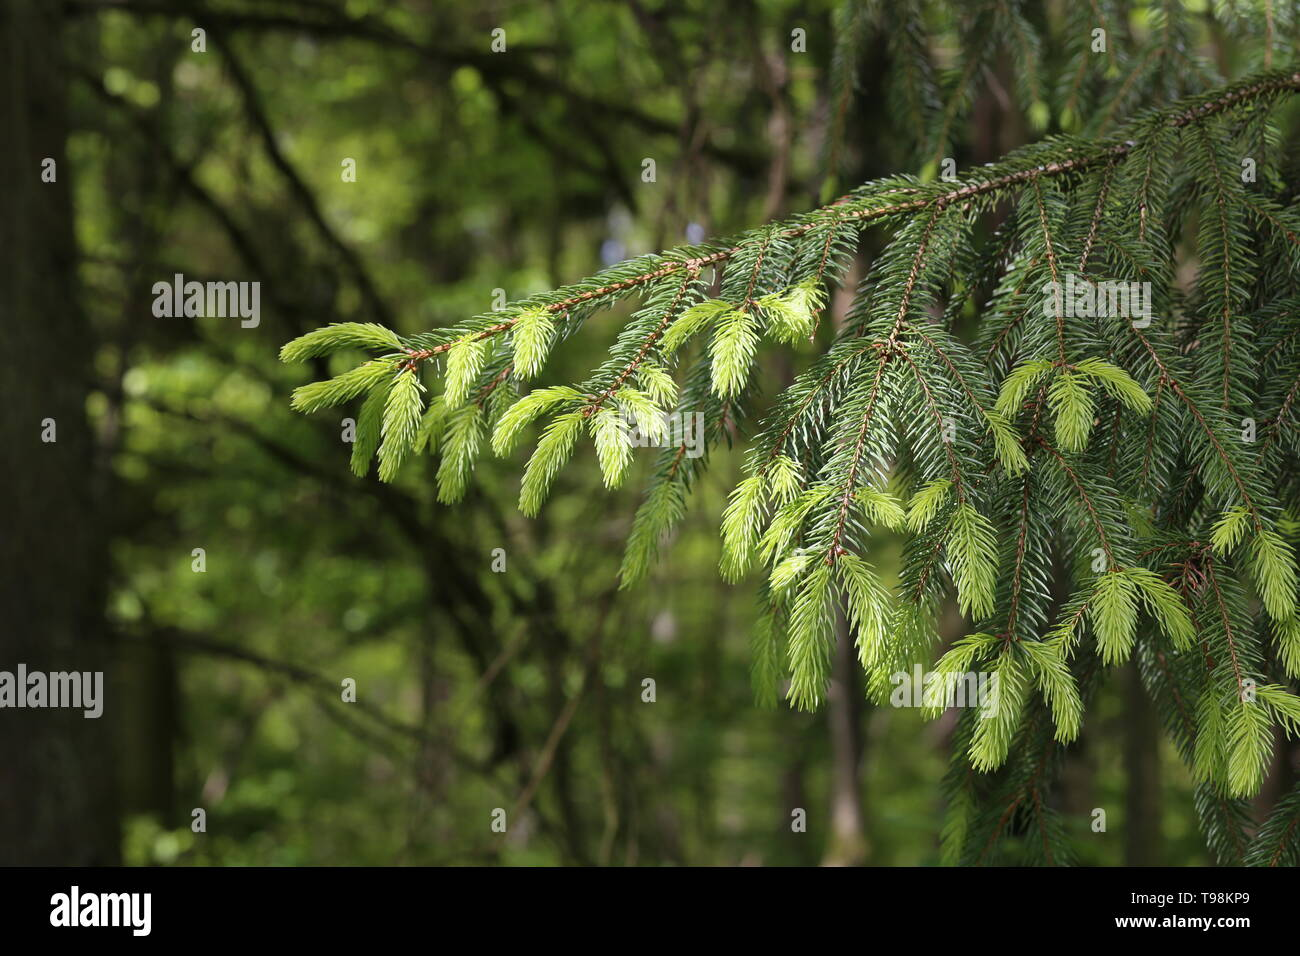 Fresh shoots on spruce branches in the forest. - Stock Image